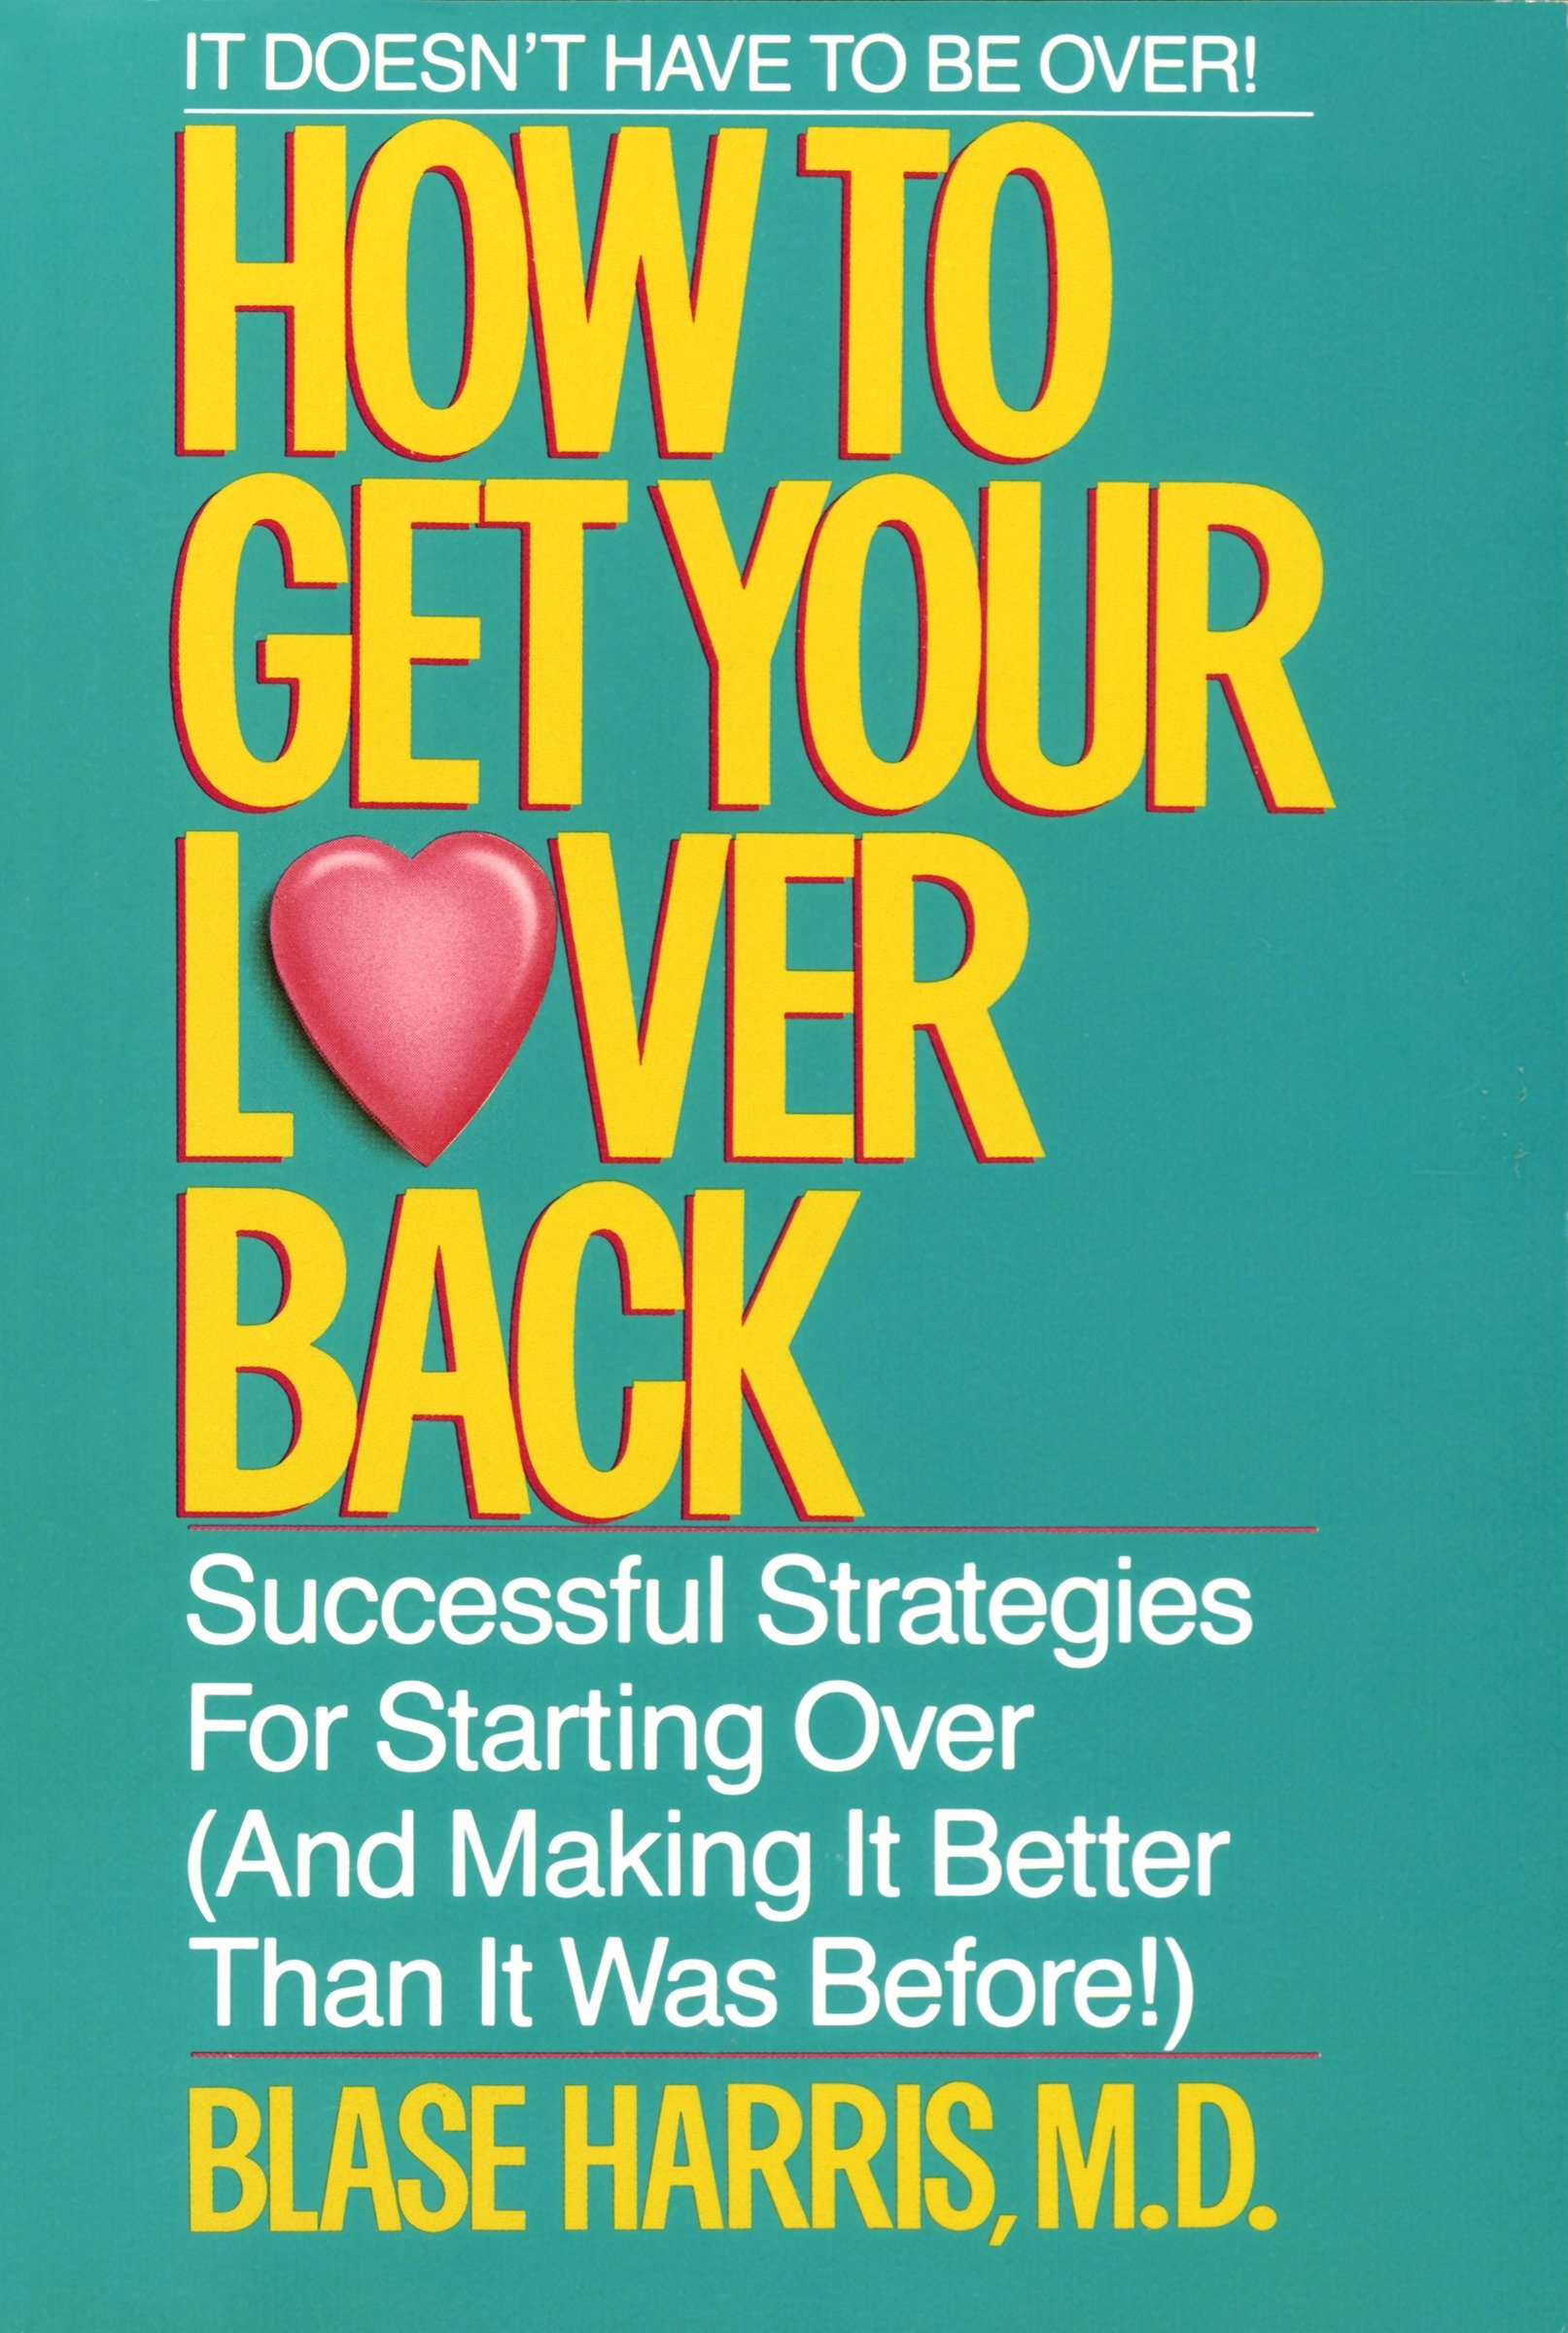 How to get your lover back cover image